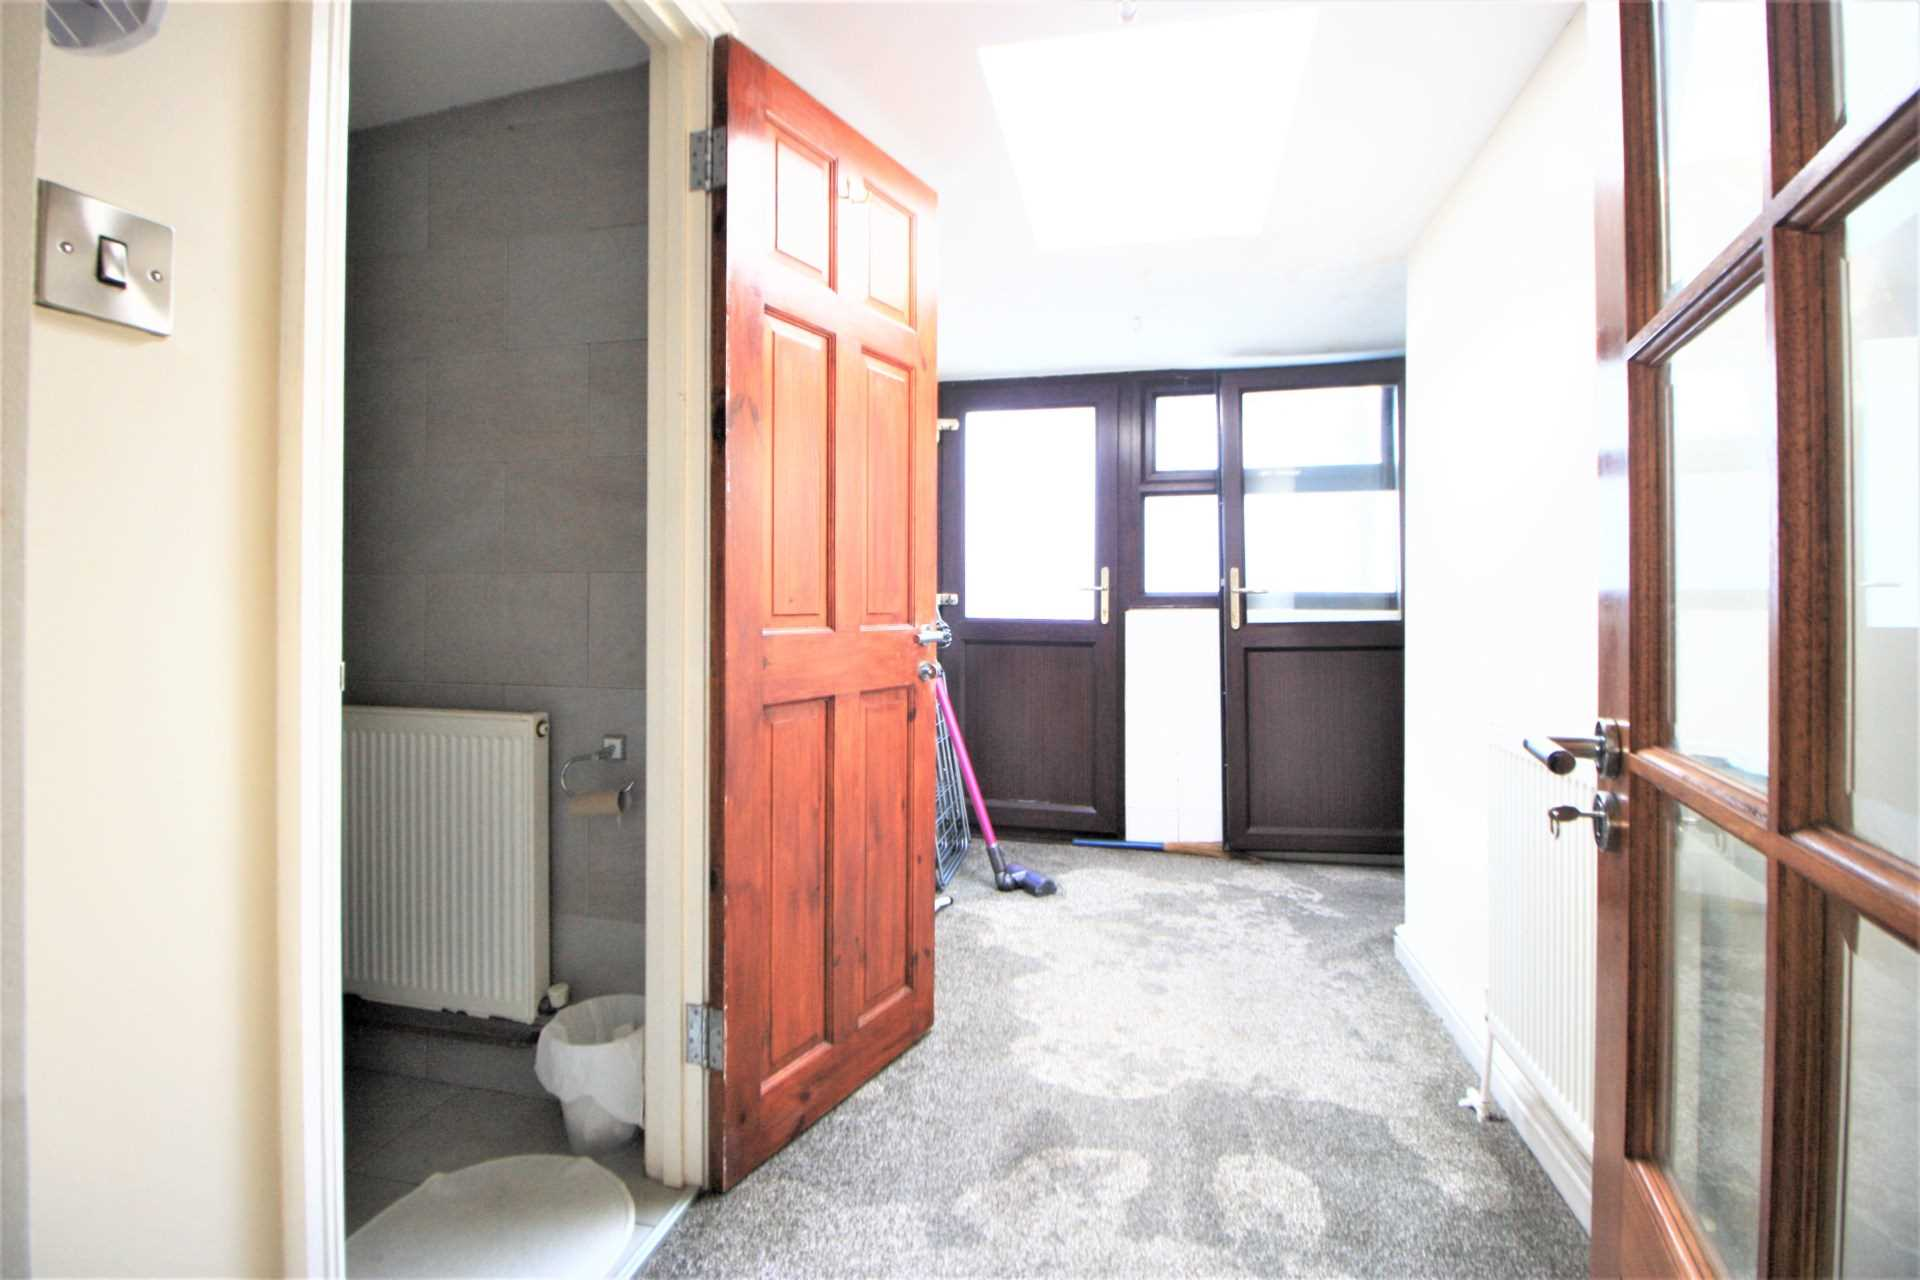 Romford Road, Forest Gate, E7, Image 6